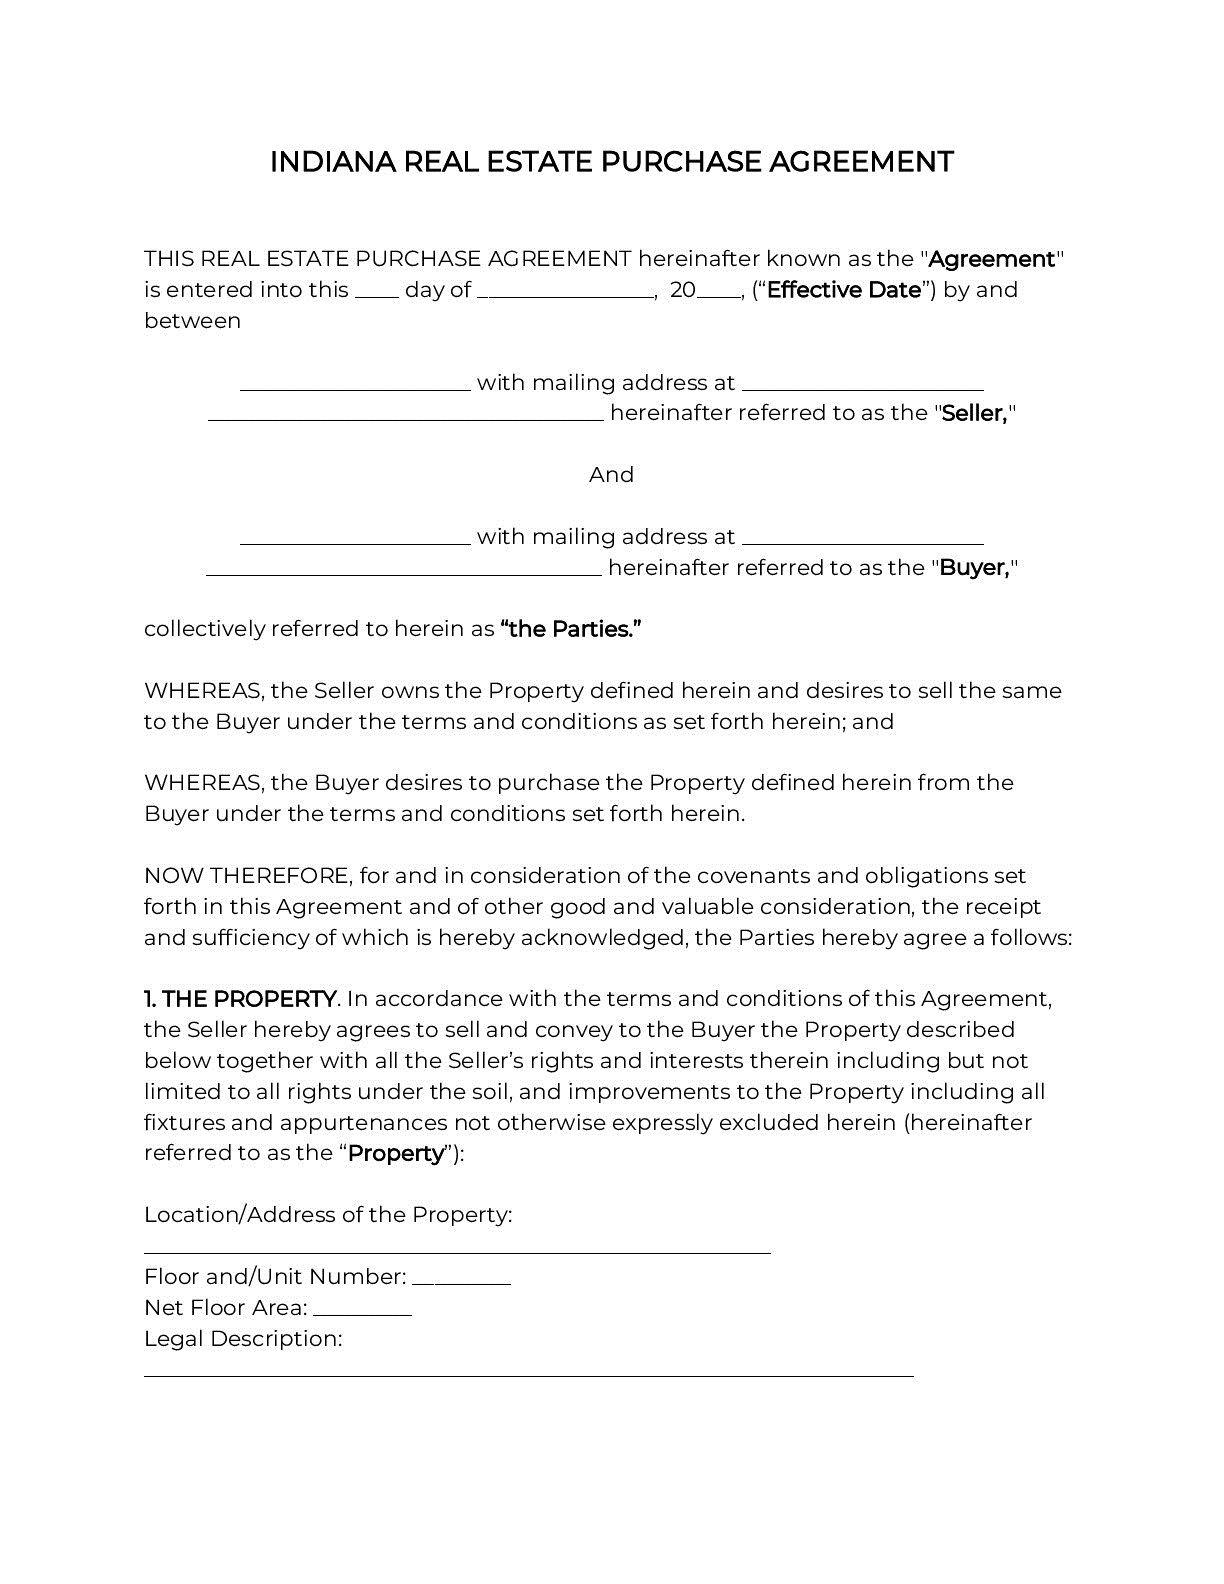 002 Impressive Home Purchase Agreement Template Michigan High Definition Full